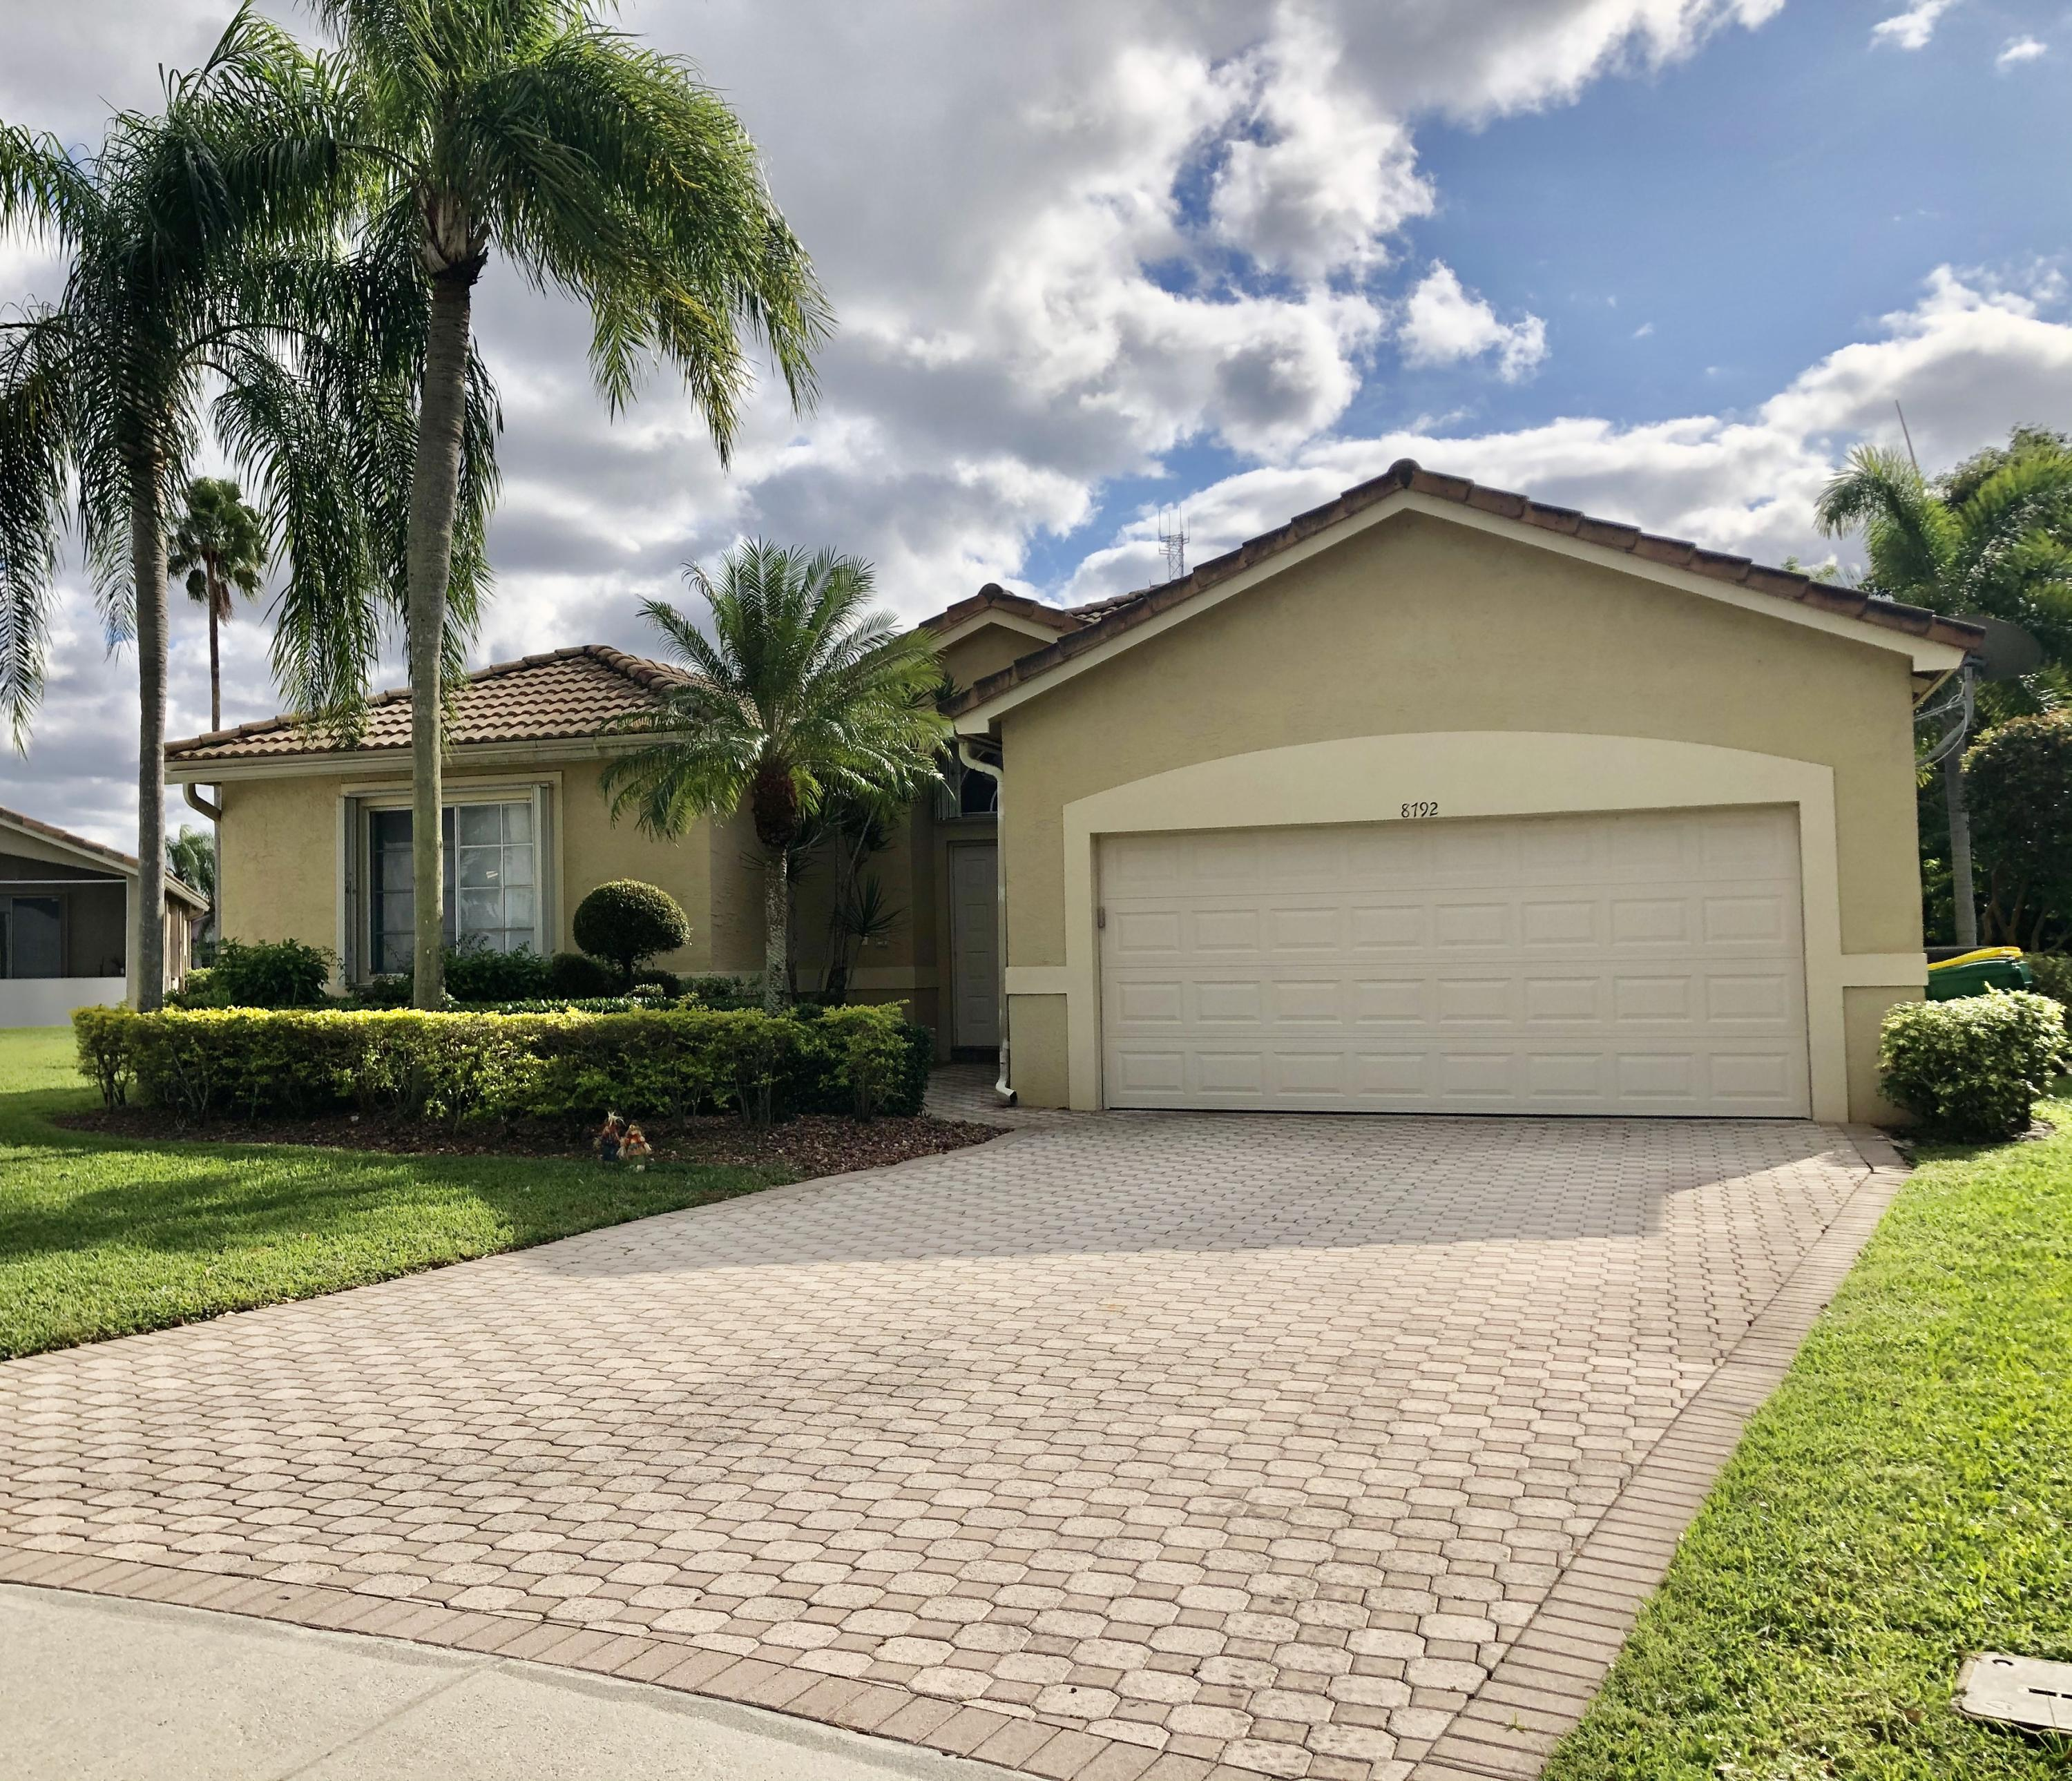 Details for 8792 76th Drive Nw, Tamarac, FL 33321